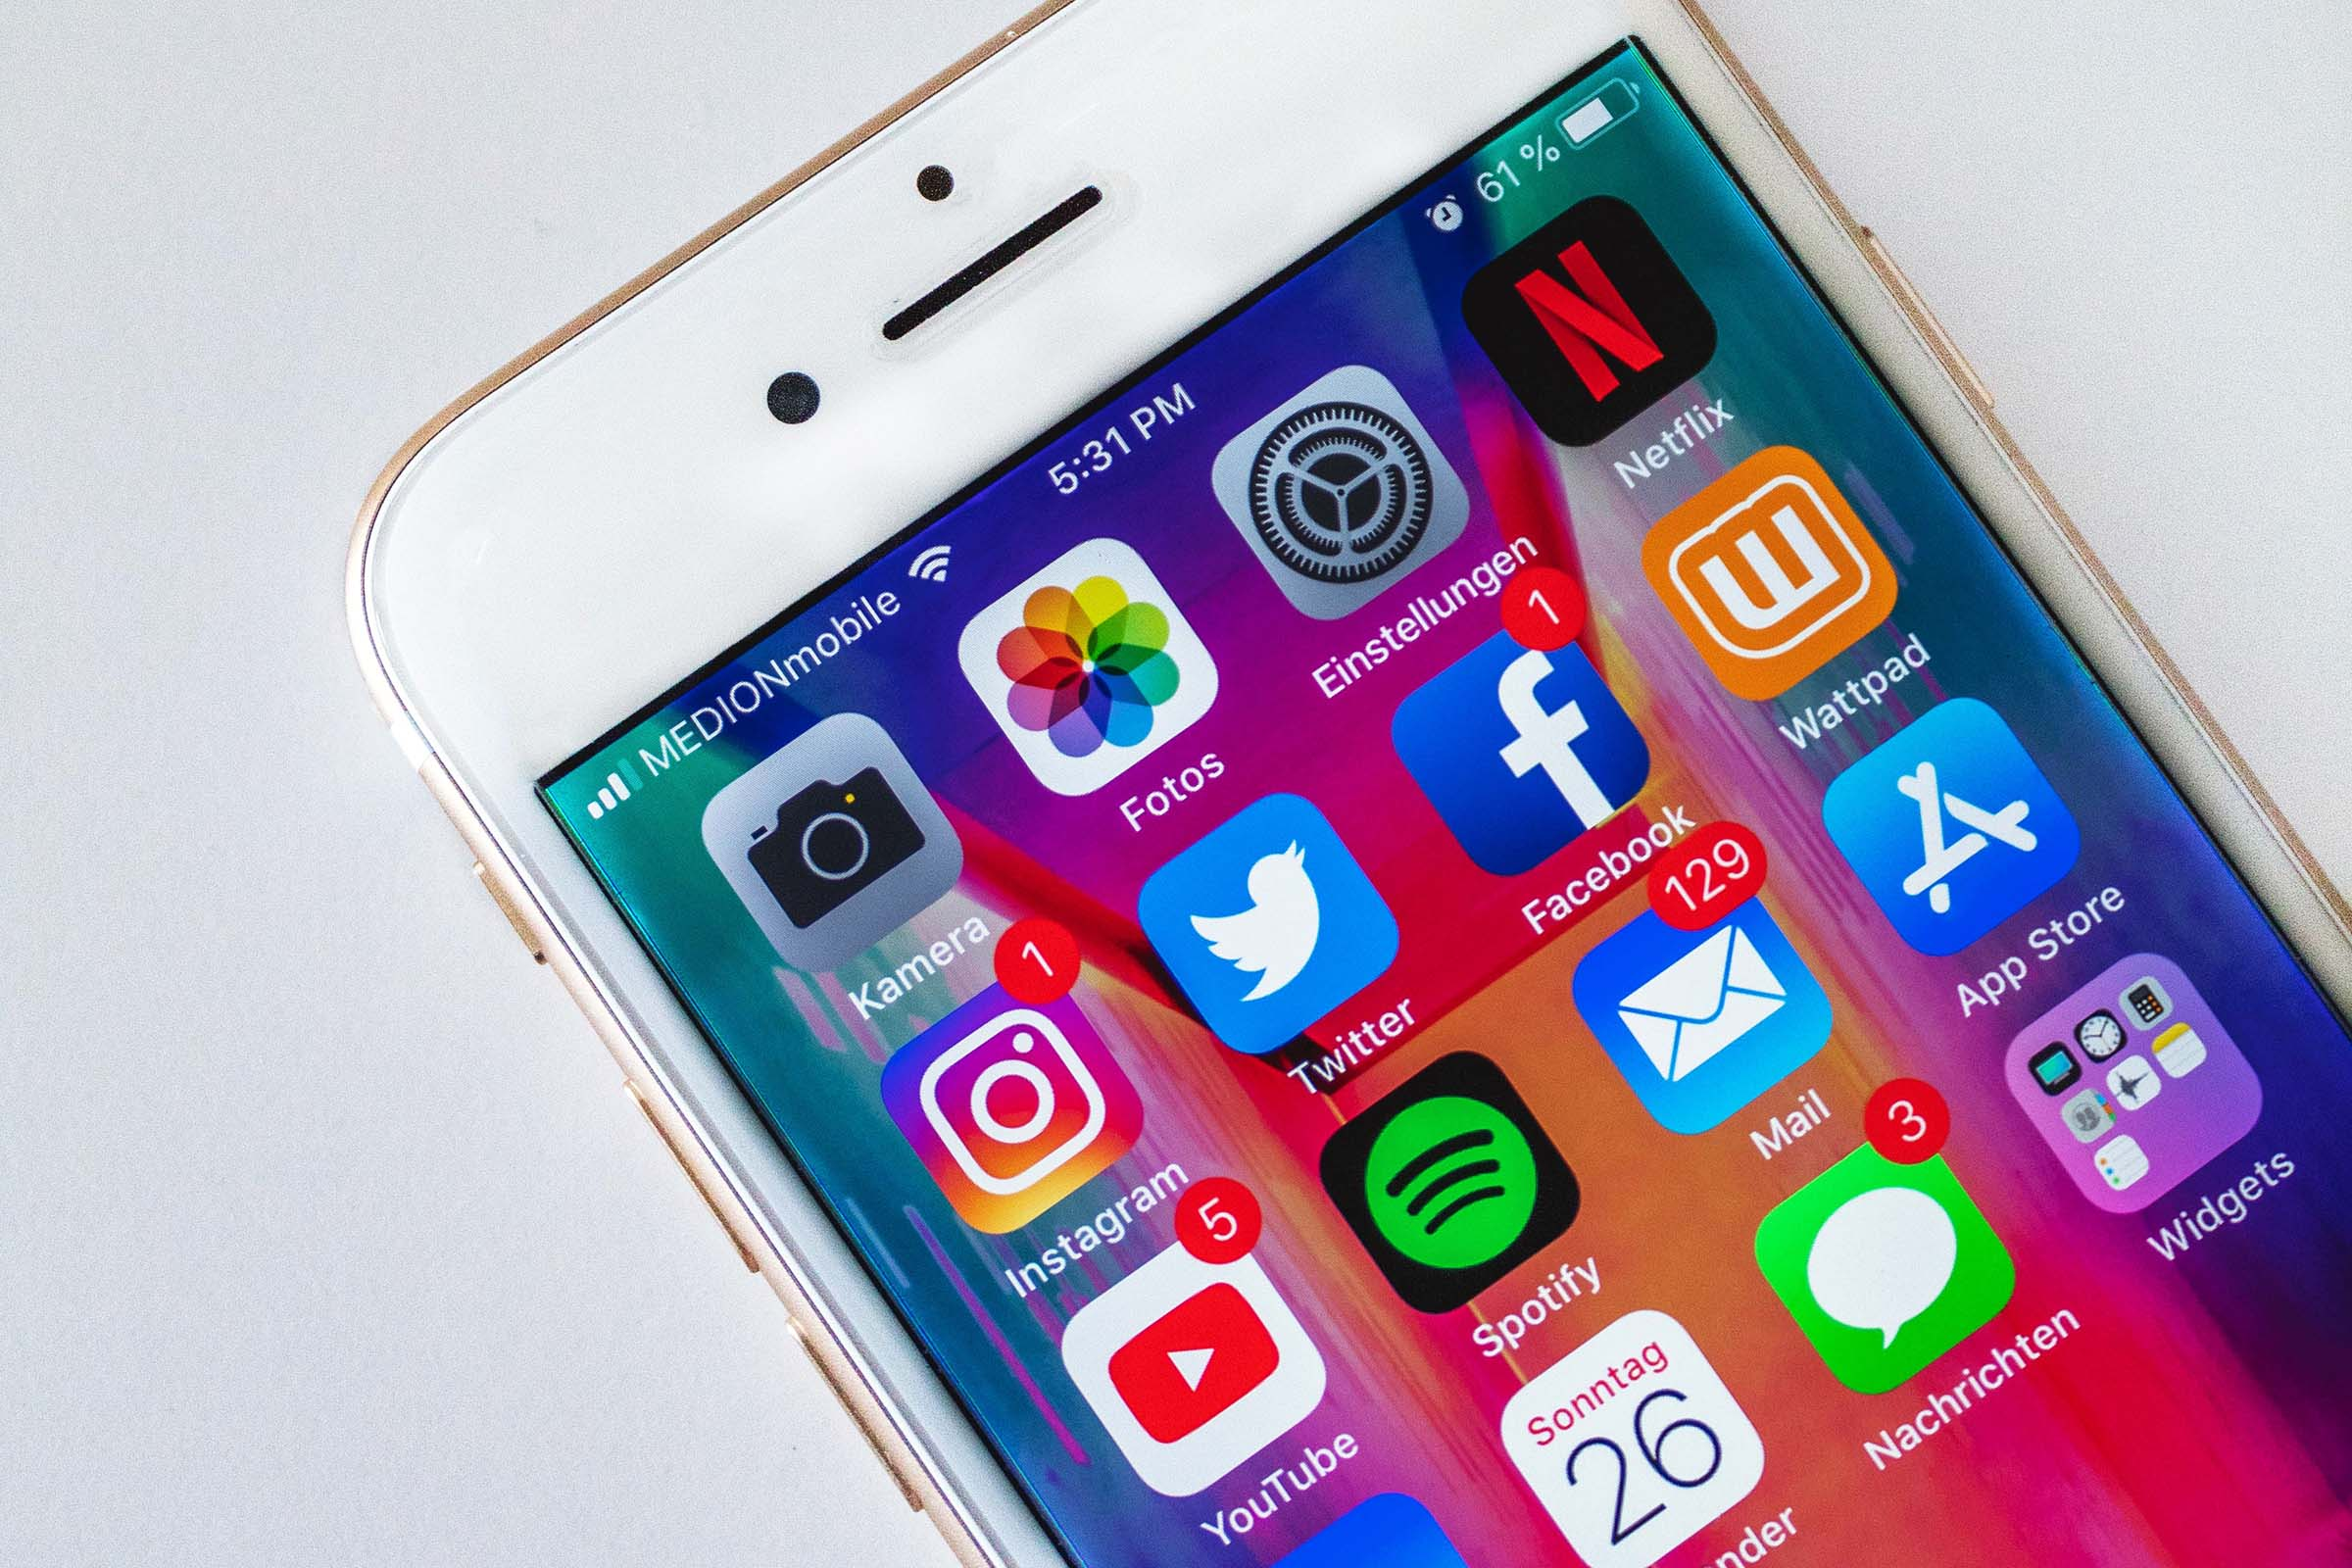 How to Buy and Inspect Used Phones From Facebook, Craiglist or other online markeplaces